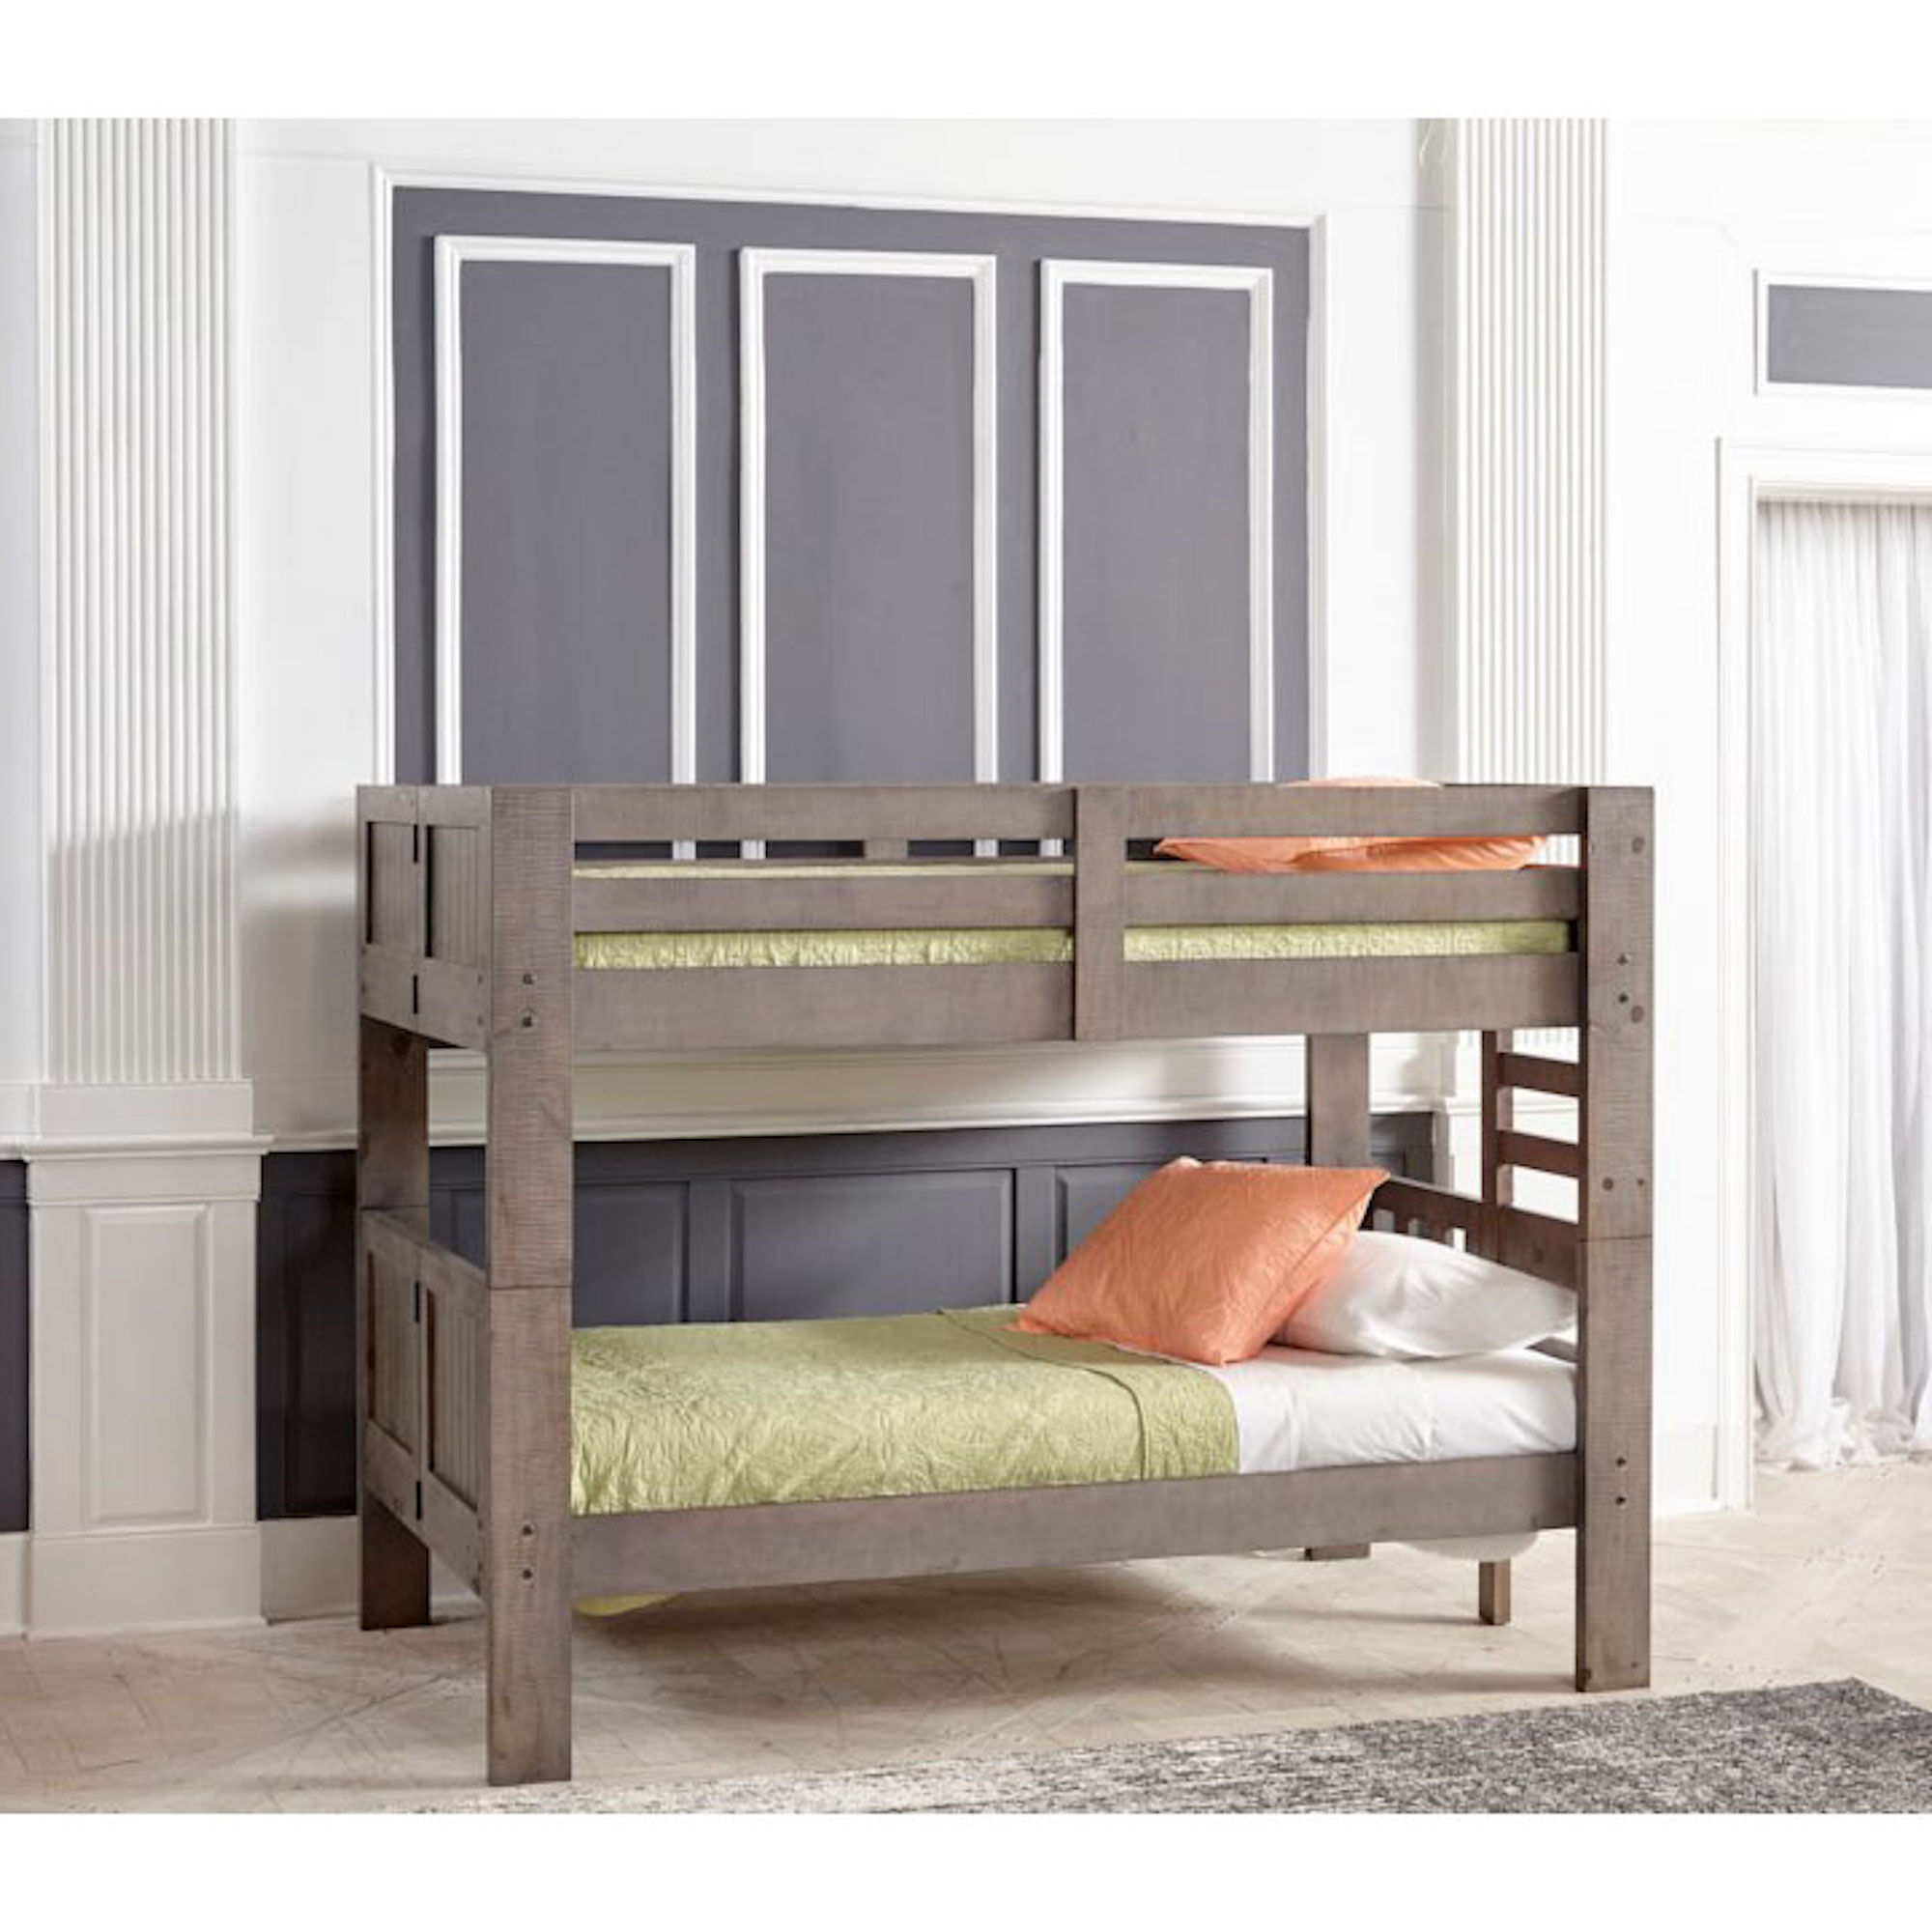 7 Piece Twin Bunk Bed With Staircase U0026 Mattress Set